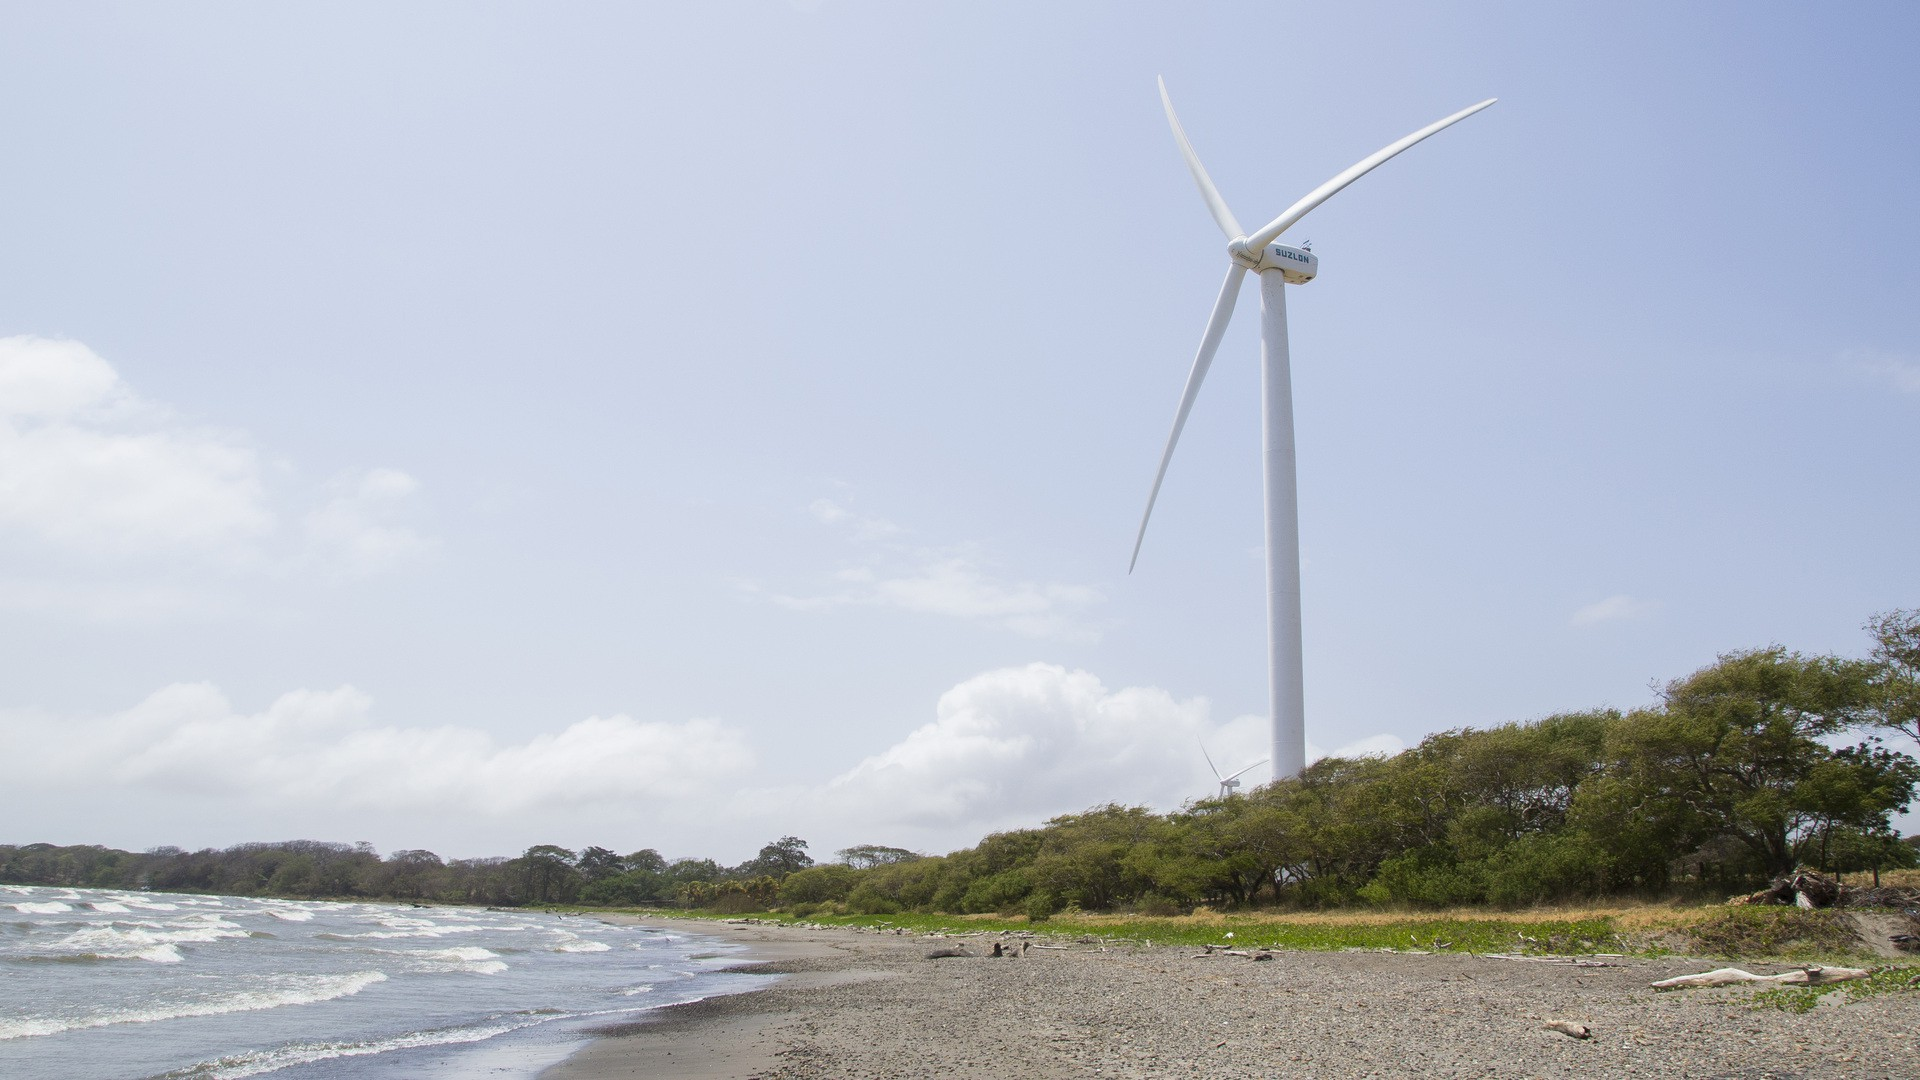 An Amayo turbine spins near Lake Nicaragua. This is one of the most active turbines because two volcanoes across the lake tunnel wind toward it. (Photo by Danika Worthington)